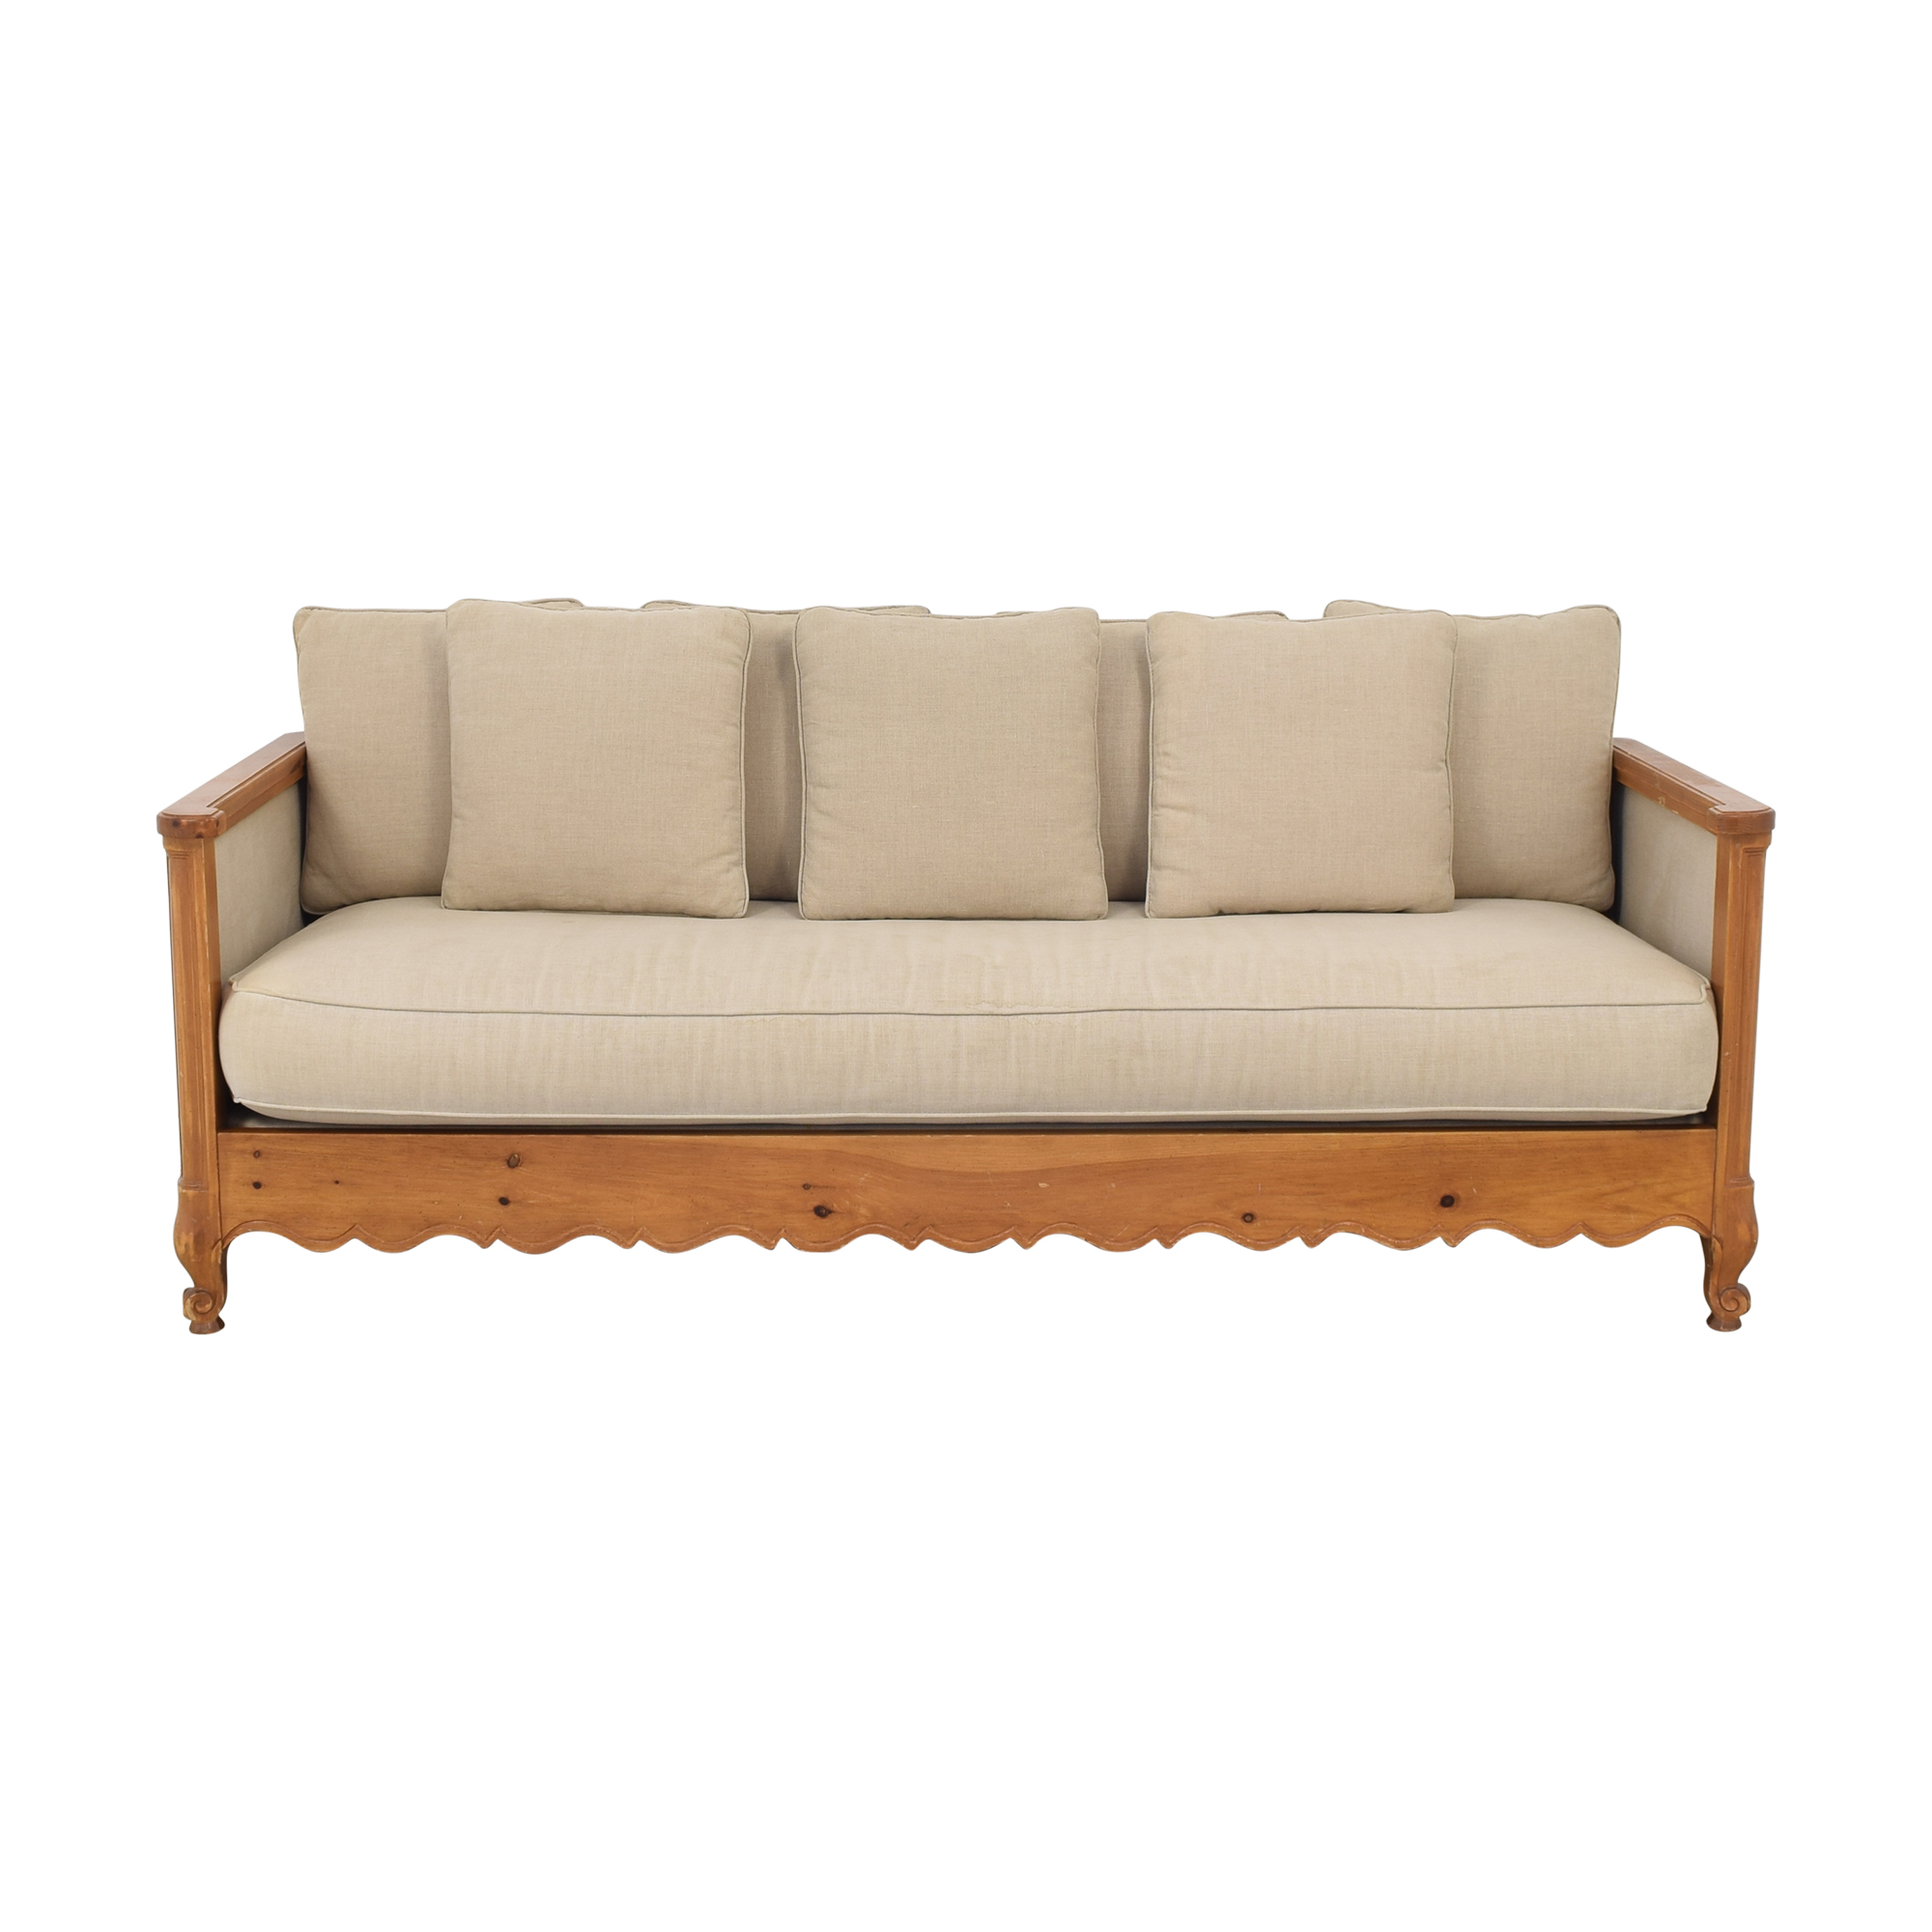 Wood Frame Sofa dimensions